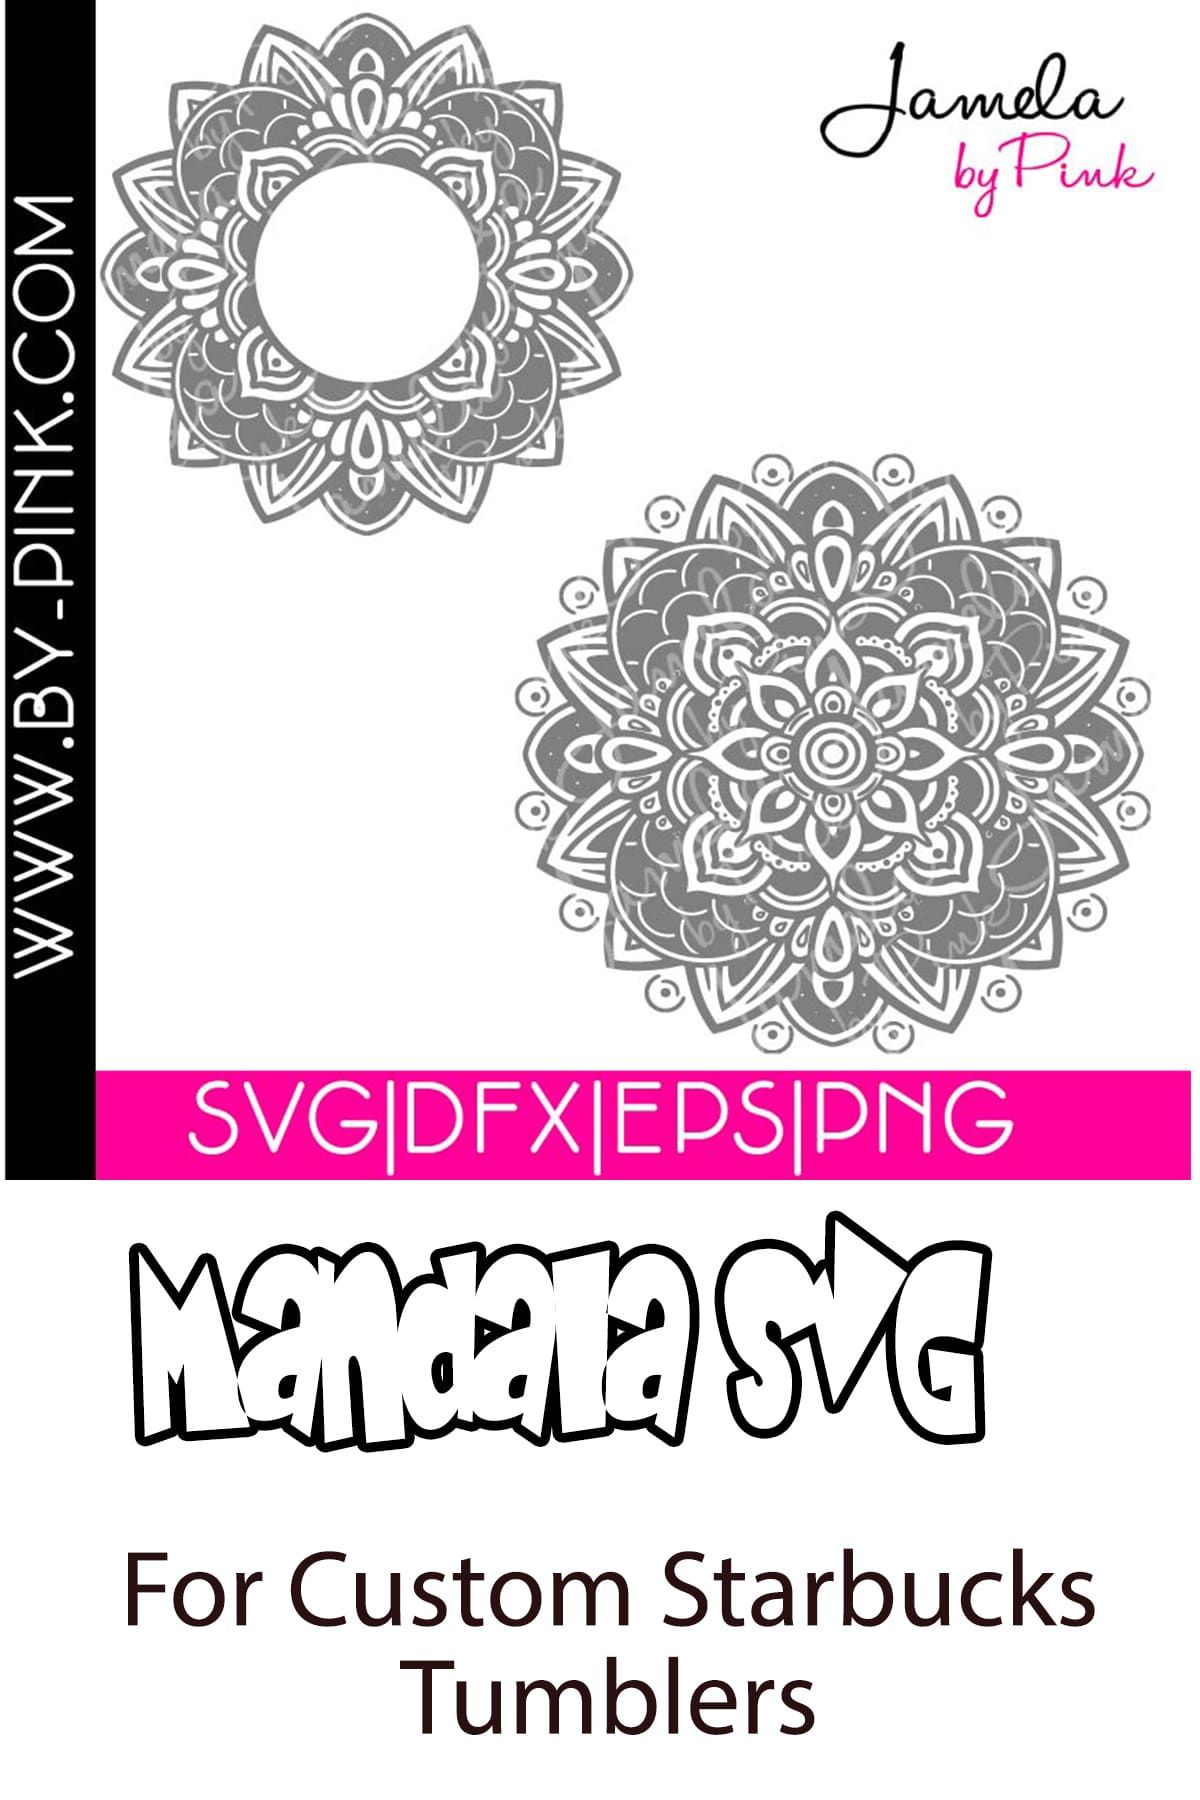 Mandala SVG For A Custom Starbucks Cup Custom starbucks